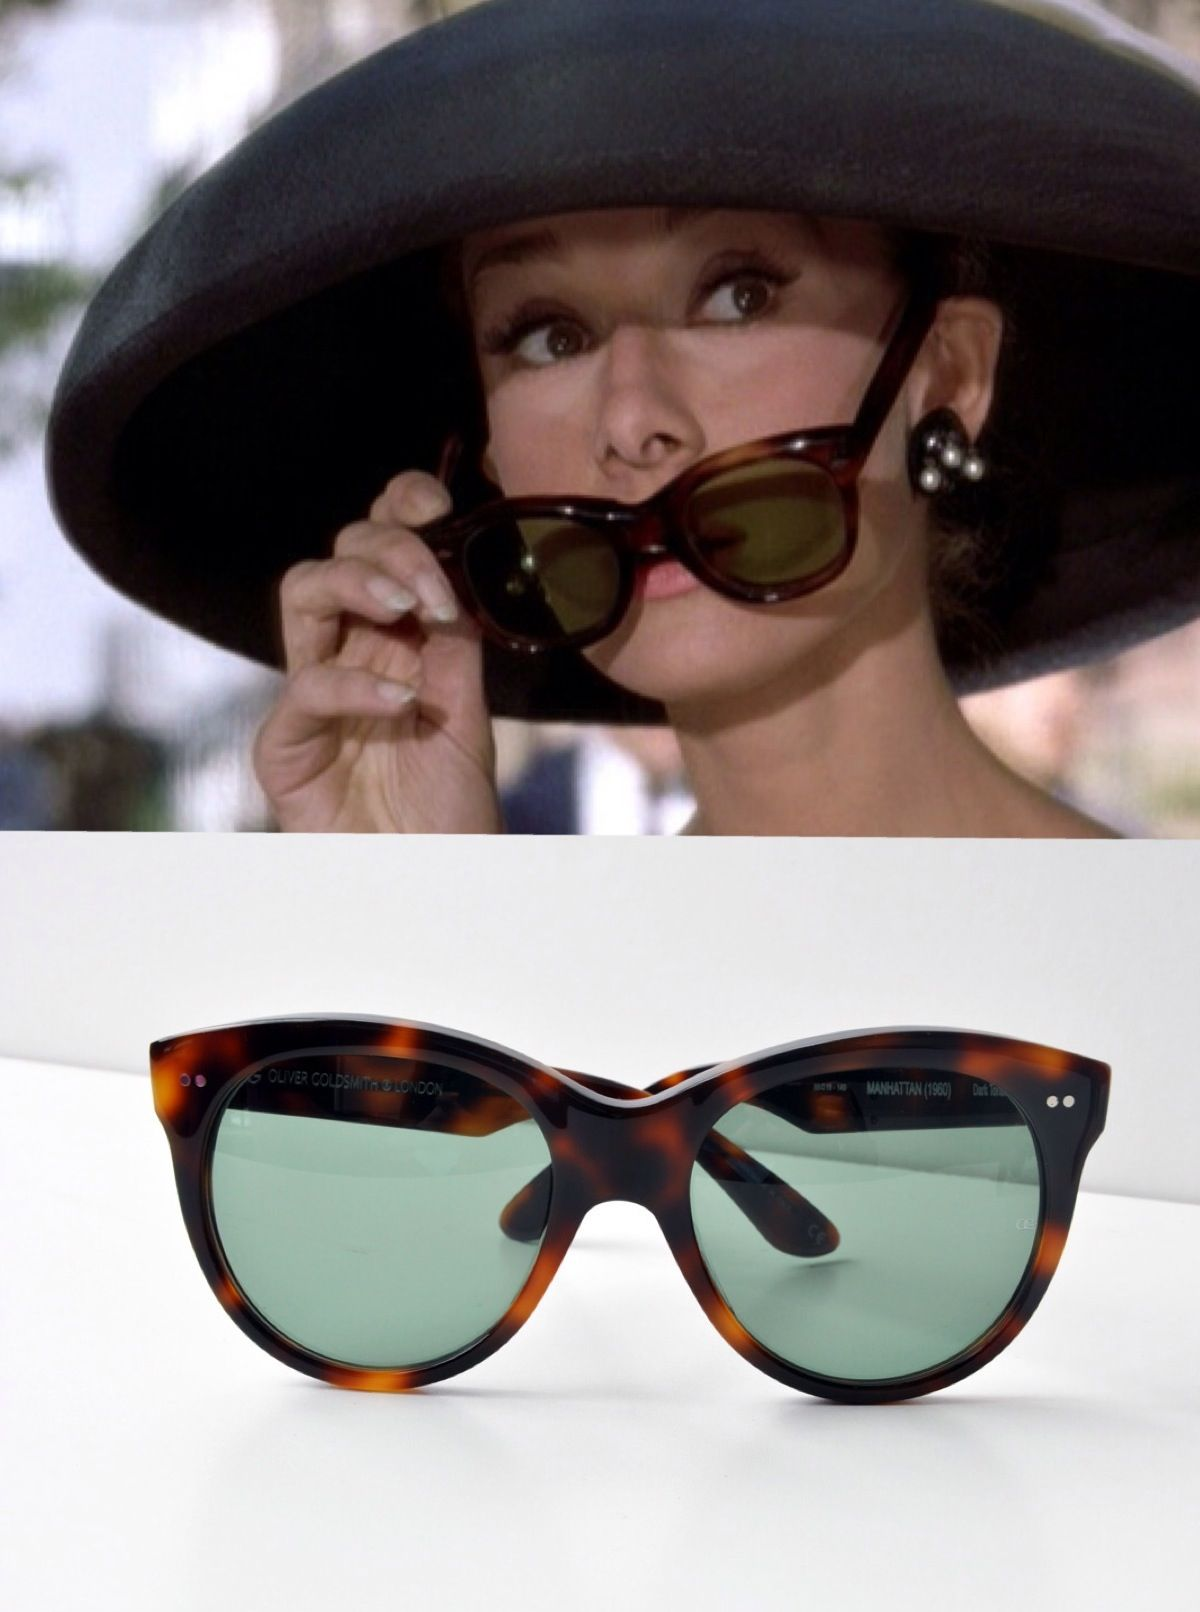 2517c1928d Oliver Goldsmith  Manhattan  Sunglasses. Audrey Hepburn Breakfast at  Tiffany s replicas!